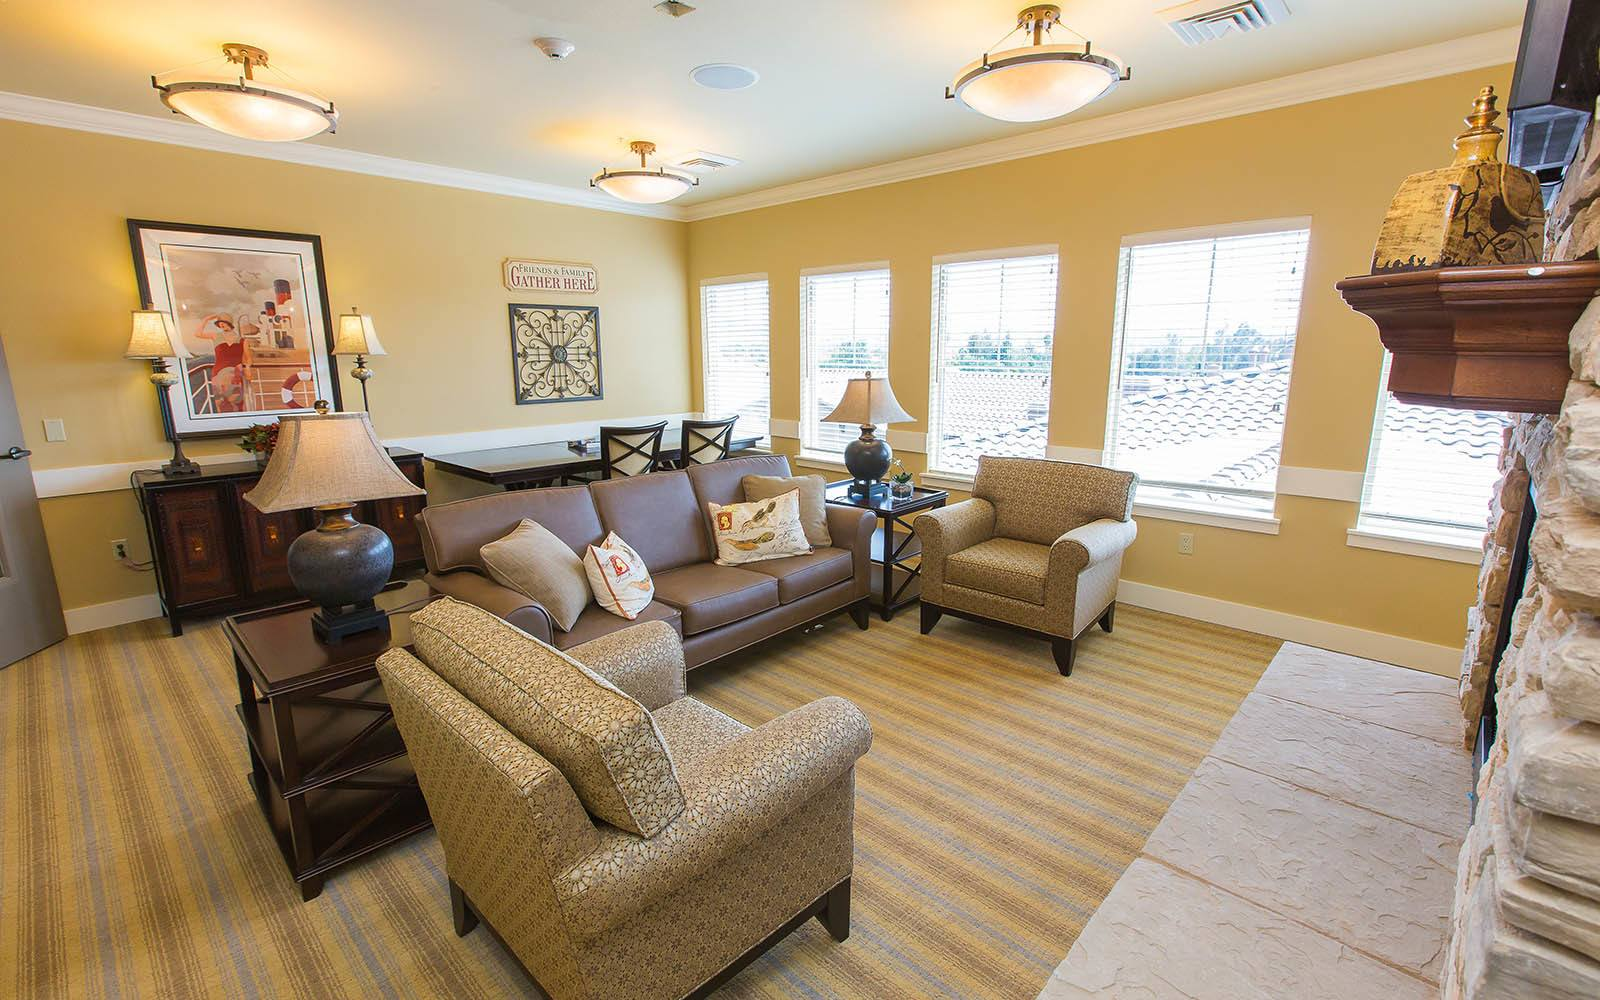 Sitting Room With Comfortable Couch And Chairs at Brightwater Senior Living of Highland in Highland, CA